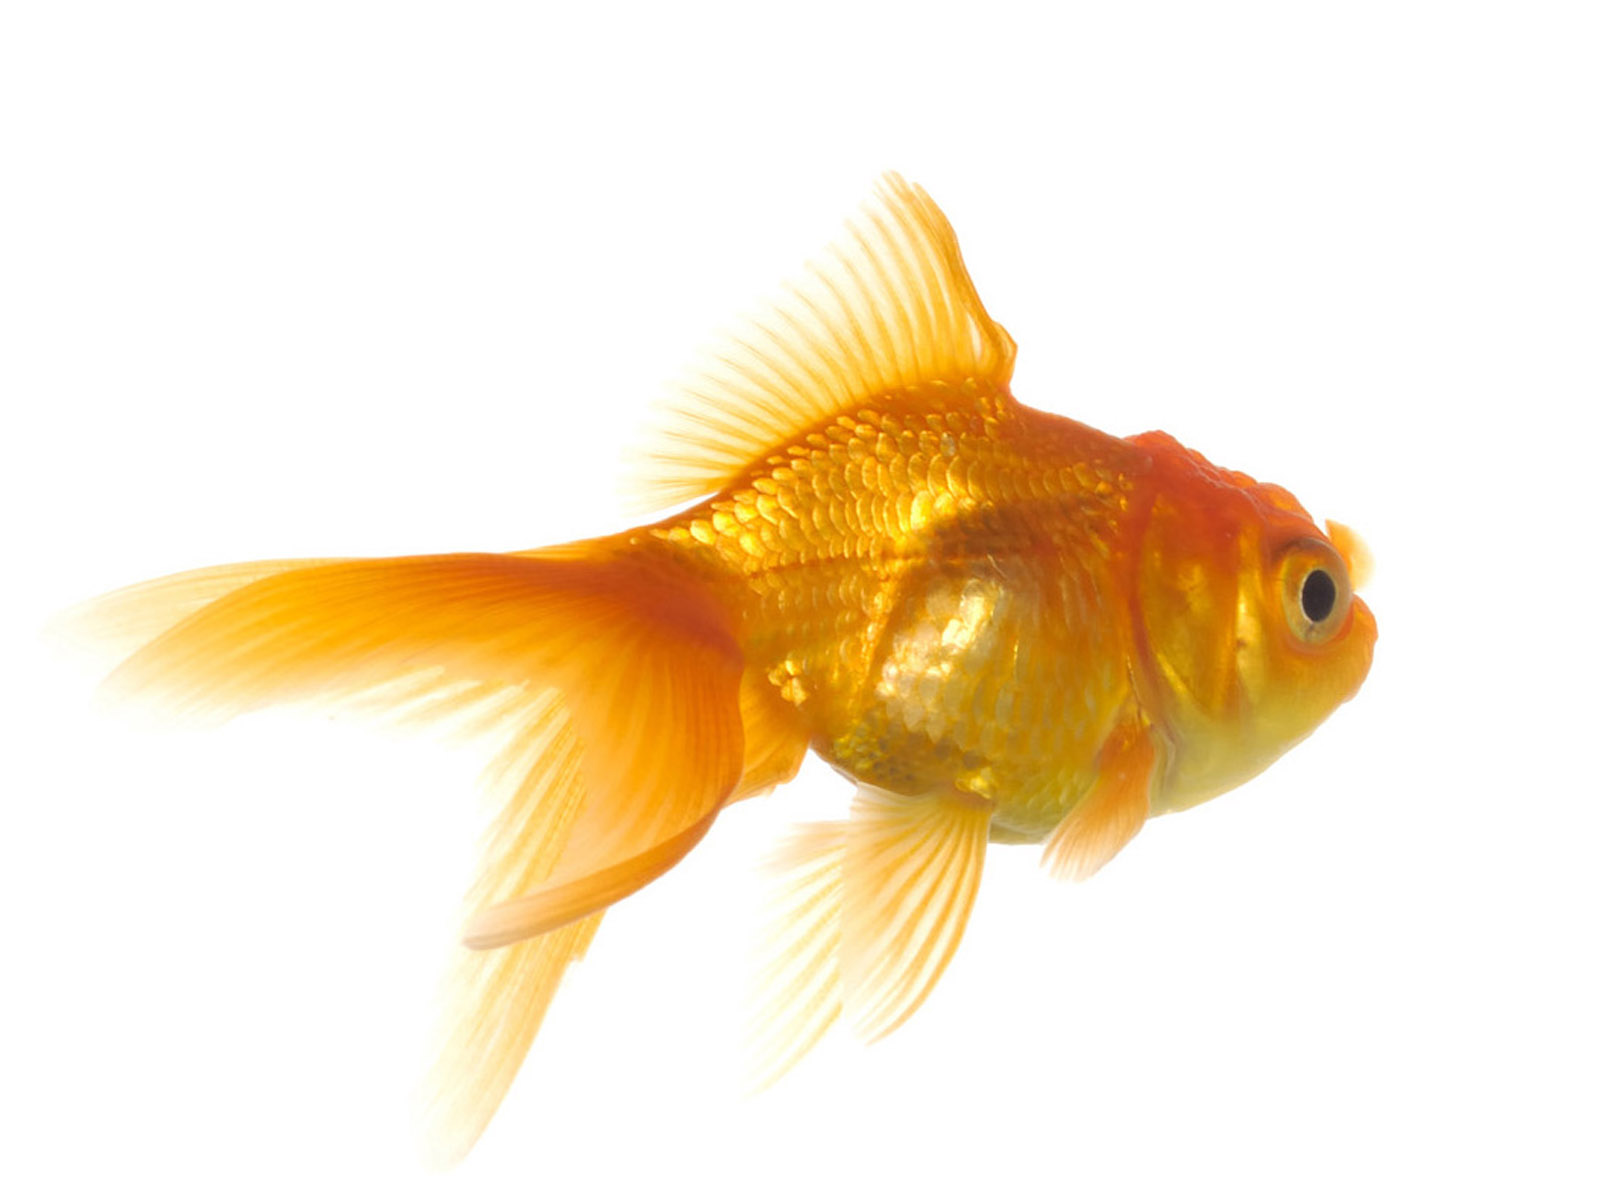 Goldfish Wallpapers   2013 Wallpapers 1600x1200